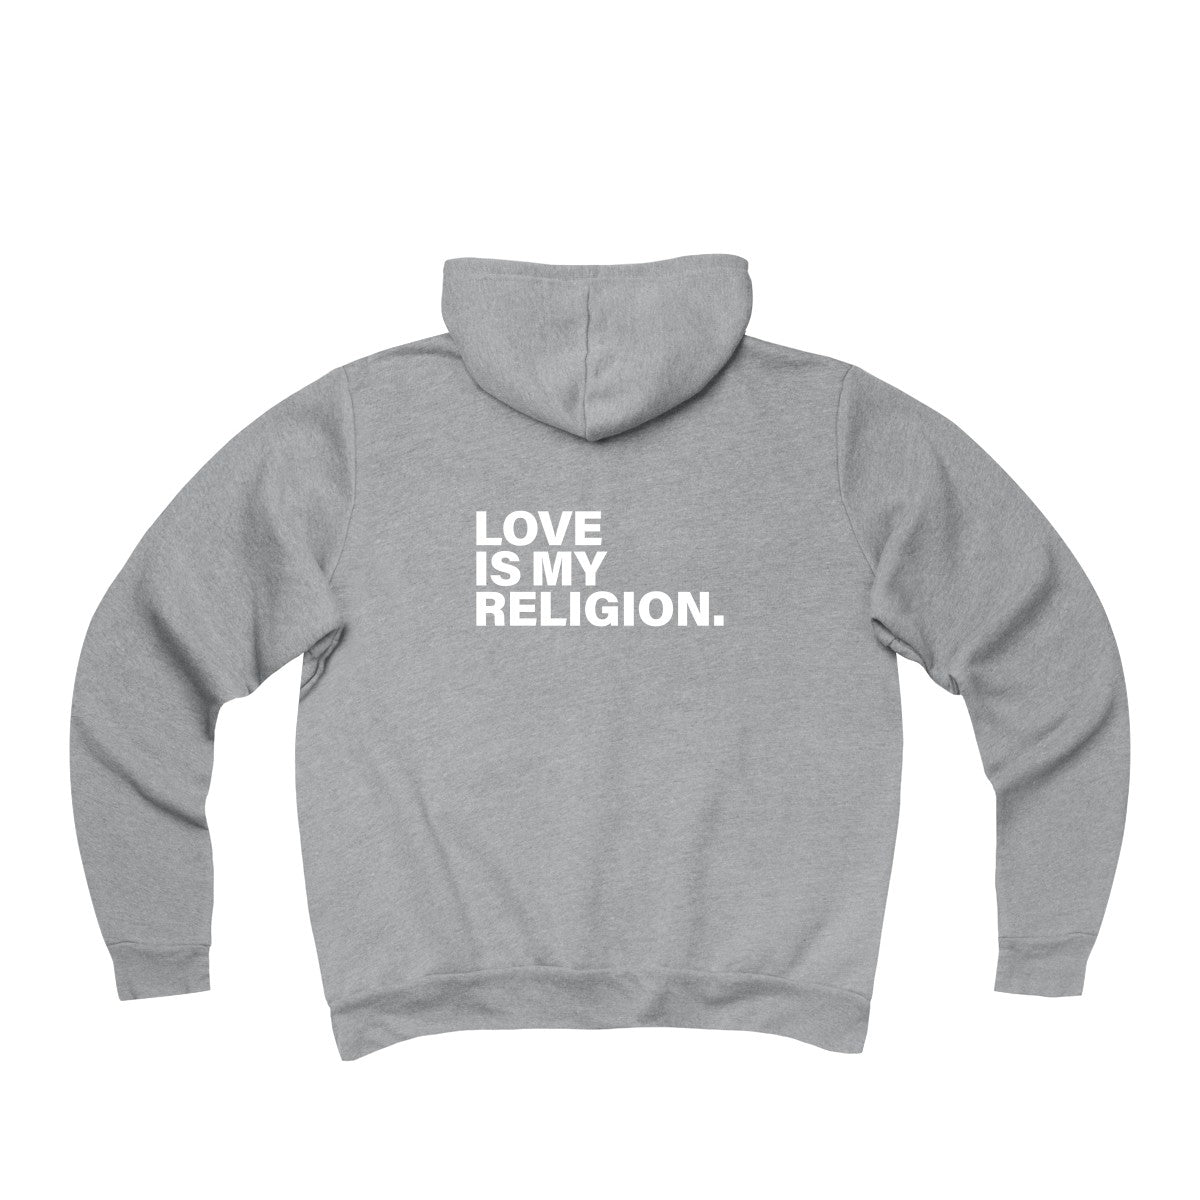 Love Is My Religion Unisex Sponge Fleece Full-Zip Hoodie - BACK PRINT